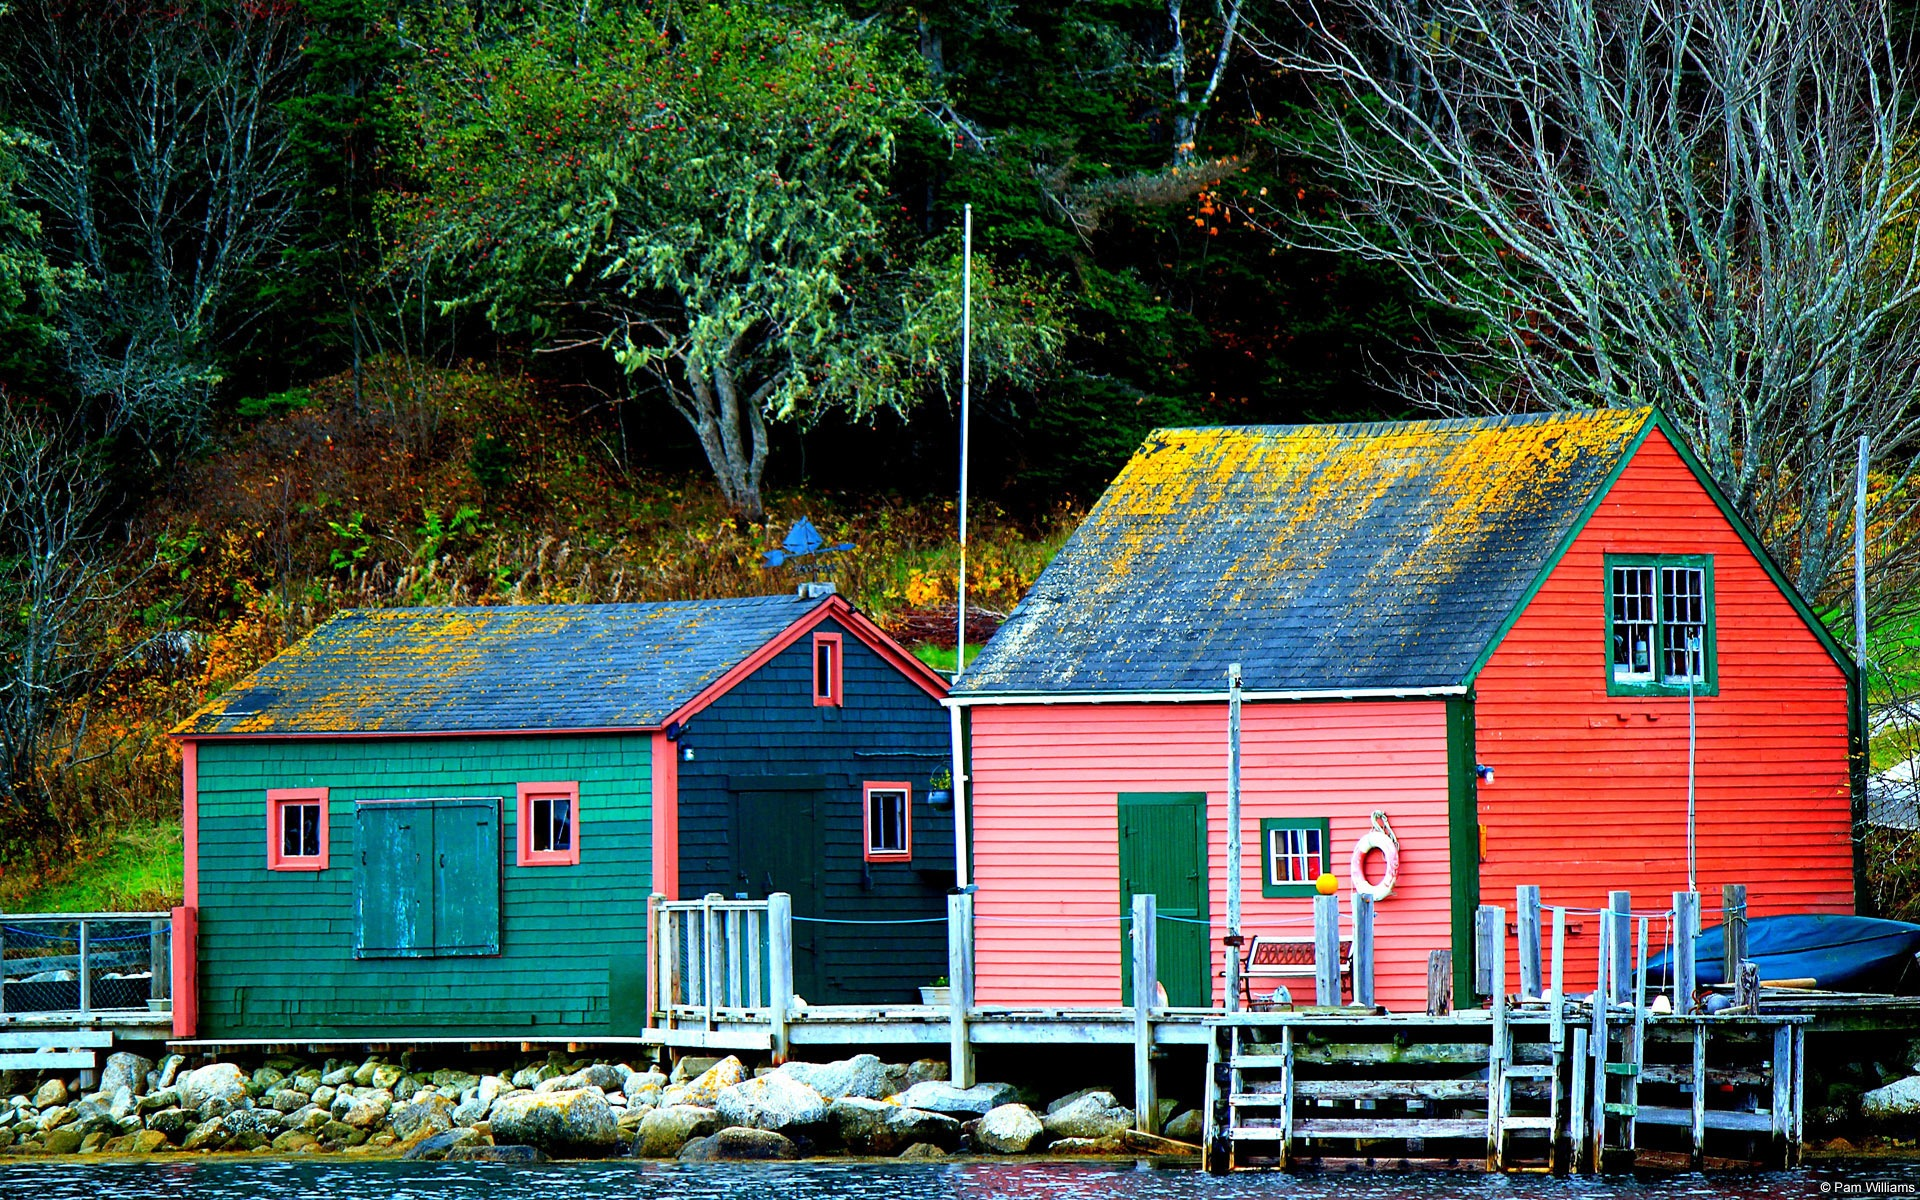 Small fishing village autumn-Country Nature Scenery Wallpaper - 1920x1200 wallpaper download